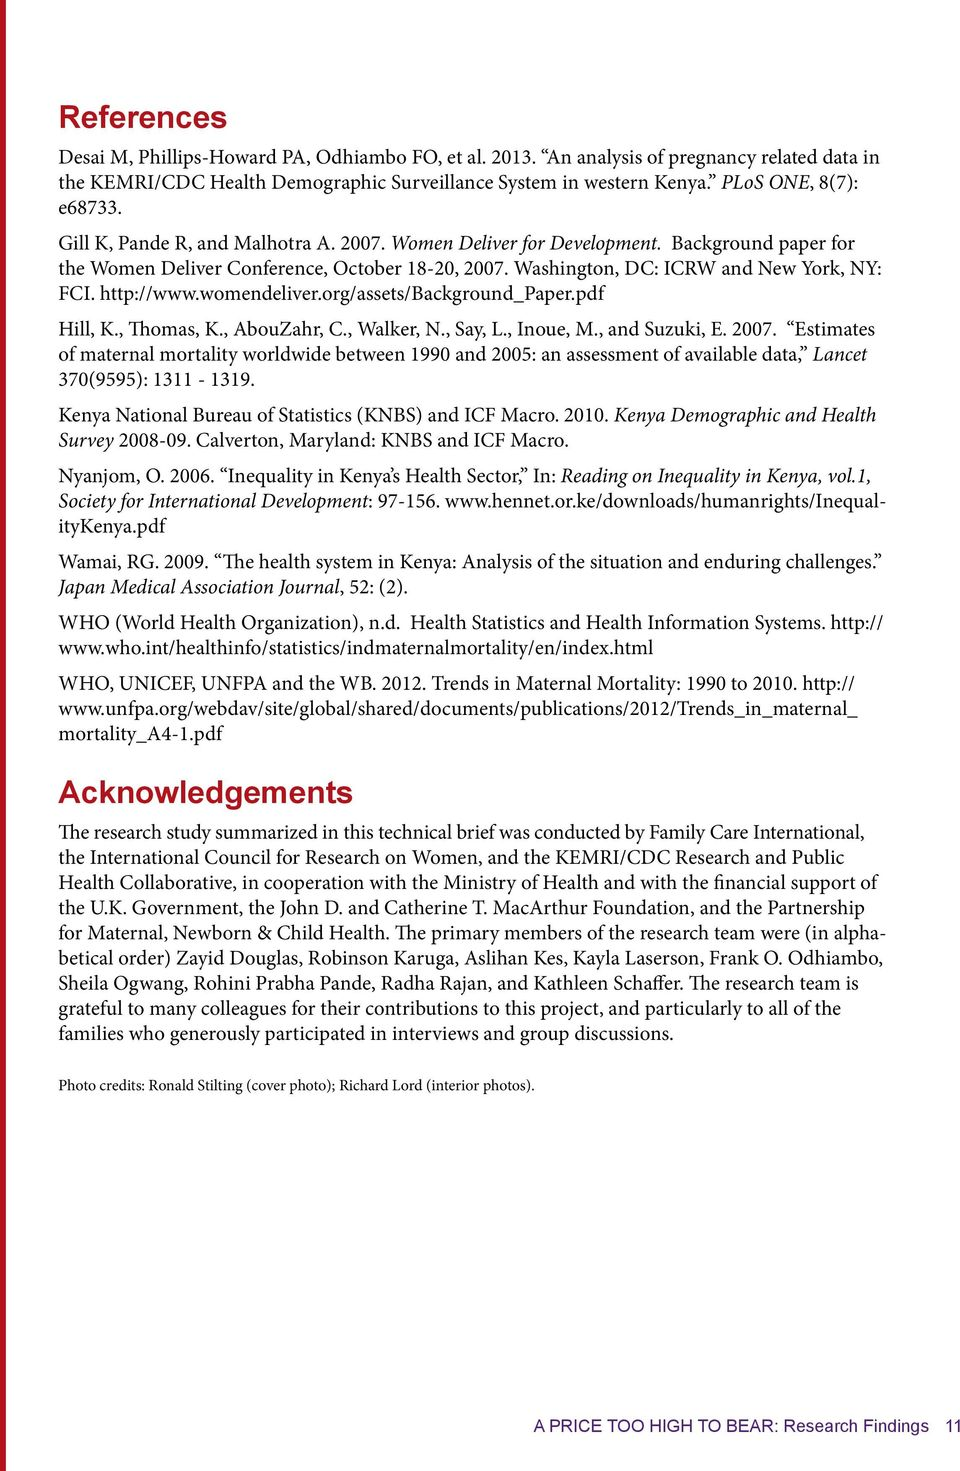 Washington, DC: ICRW and New York, NY: FCI. http://www.womendeliver.org/assets/background_paper.pdf Hill, K., Thomas, K., AbouZahr, C., Walker, N., Say, L., Inoue, M., and Suzuki, E. 2007.